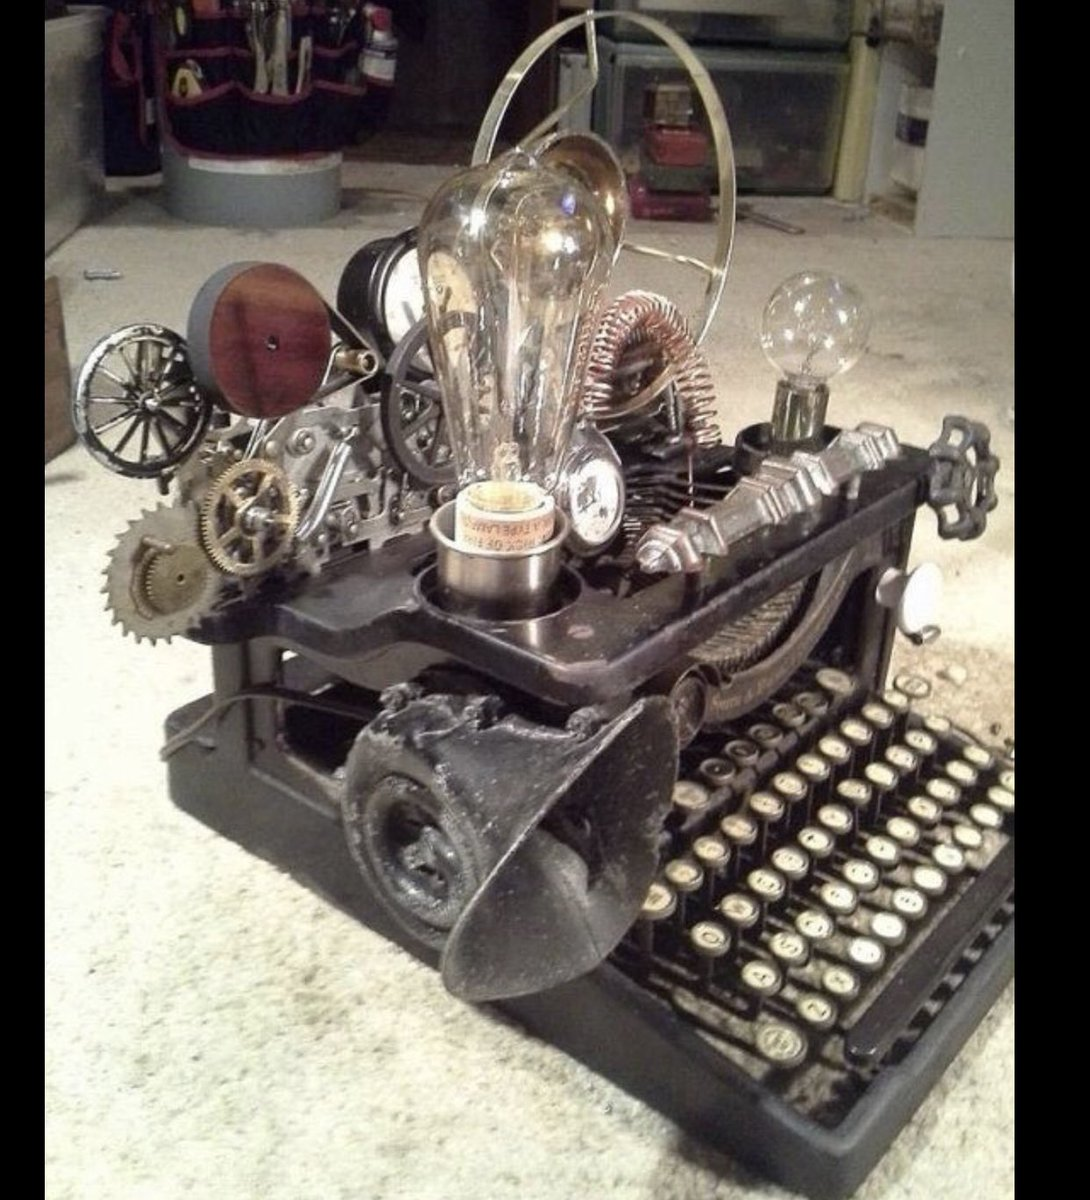 @JimLaPorta That's the genesis of a #STEAMPUNK machine that percolates coffee and gives massages as well as all that wordsmith stuff.